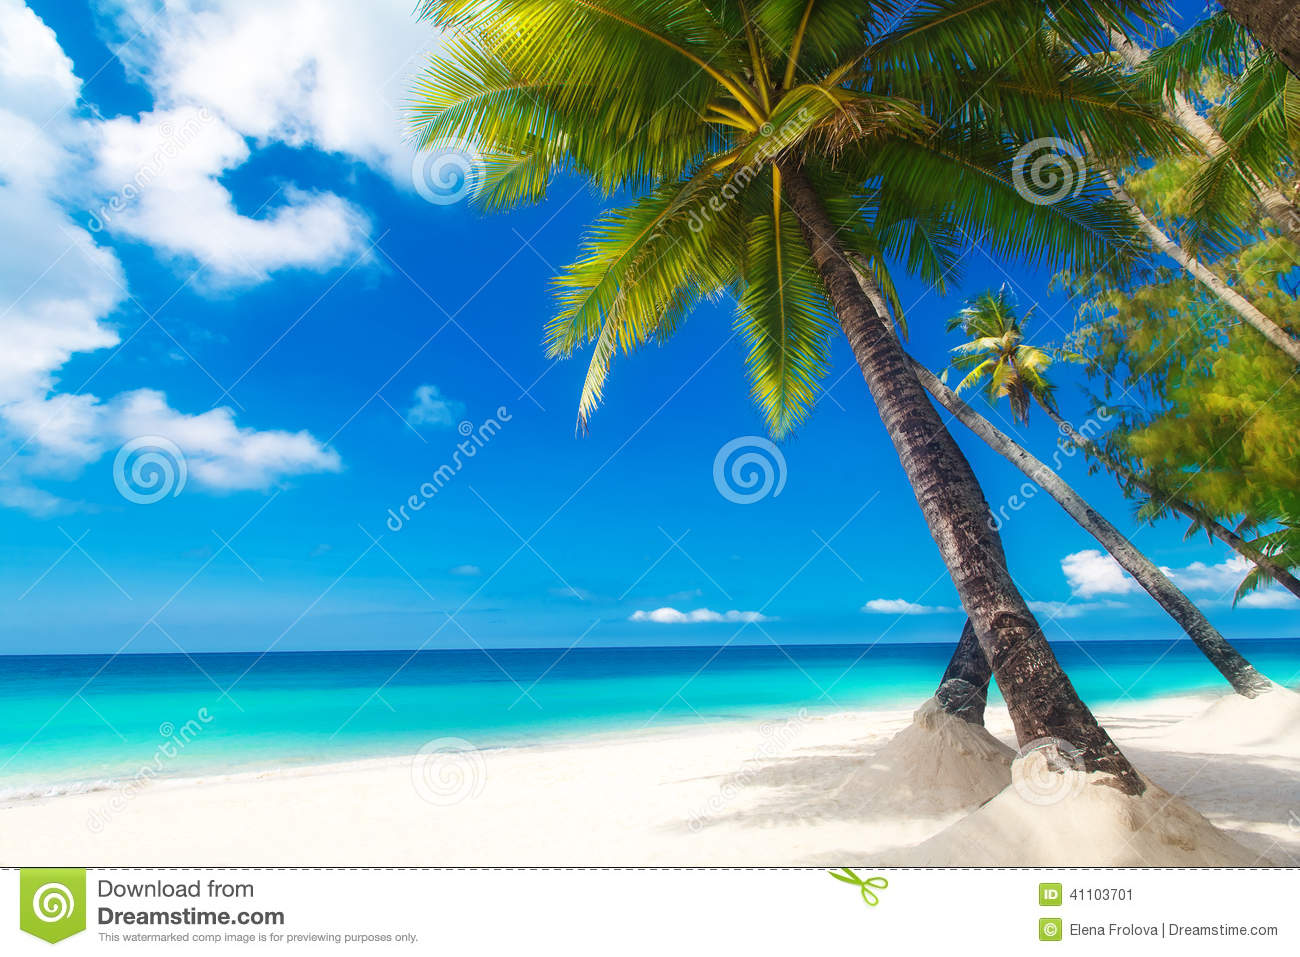 Dream scene. Beautiful palm tree over white sand beach. Summer n